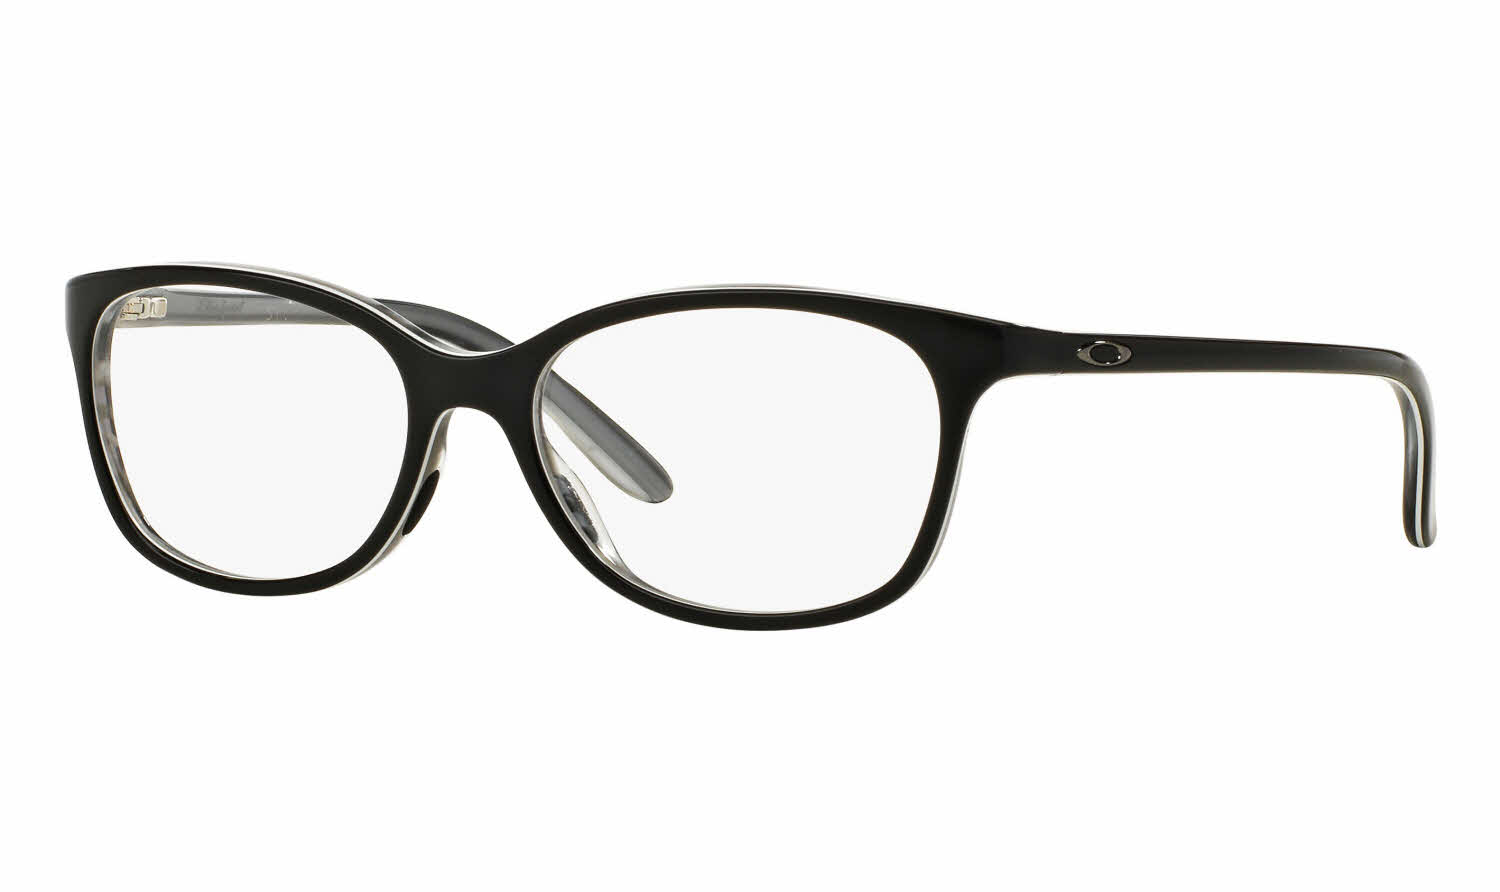 Oakley Women Standpoint Eyeglasses